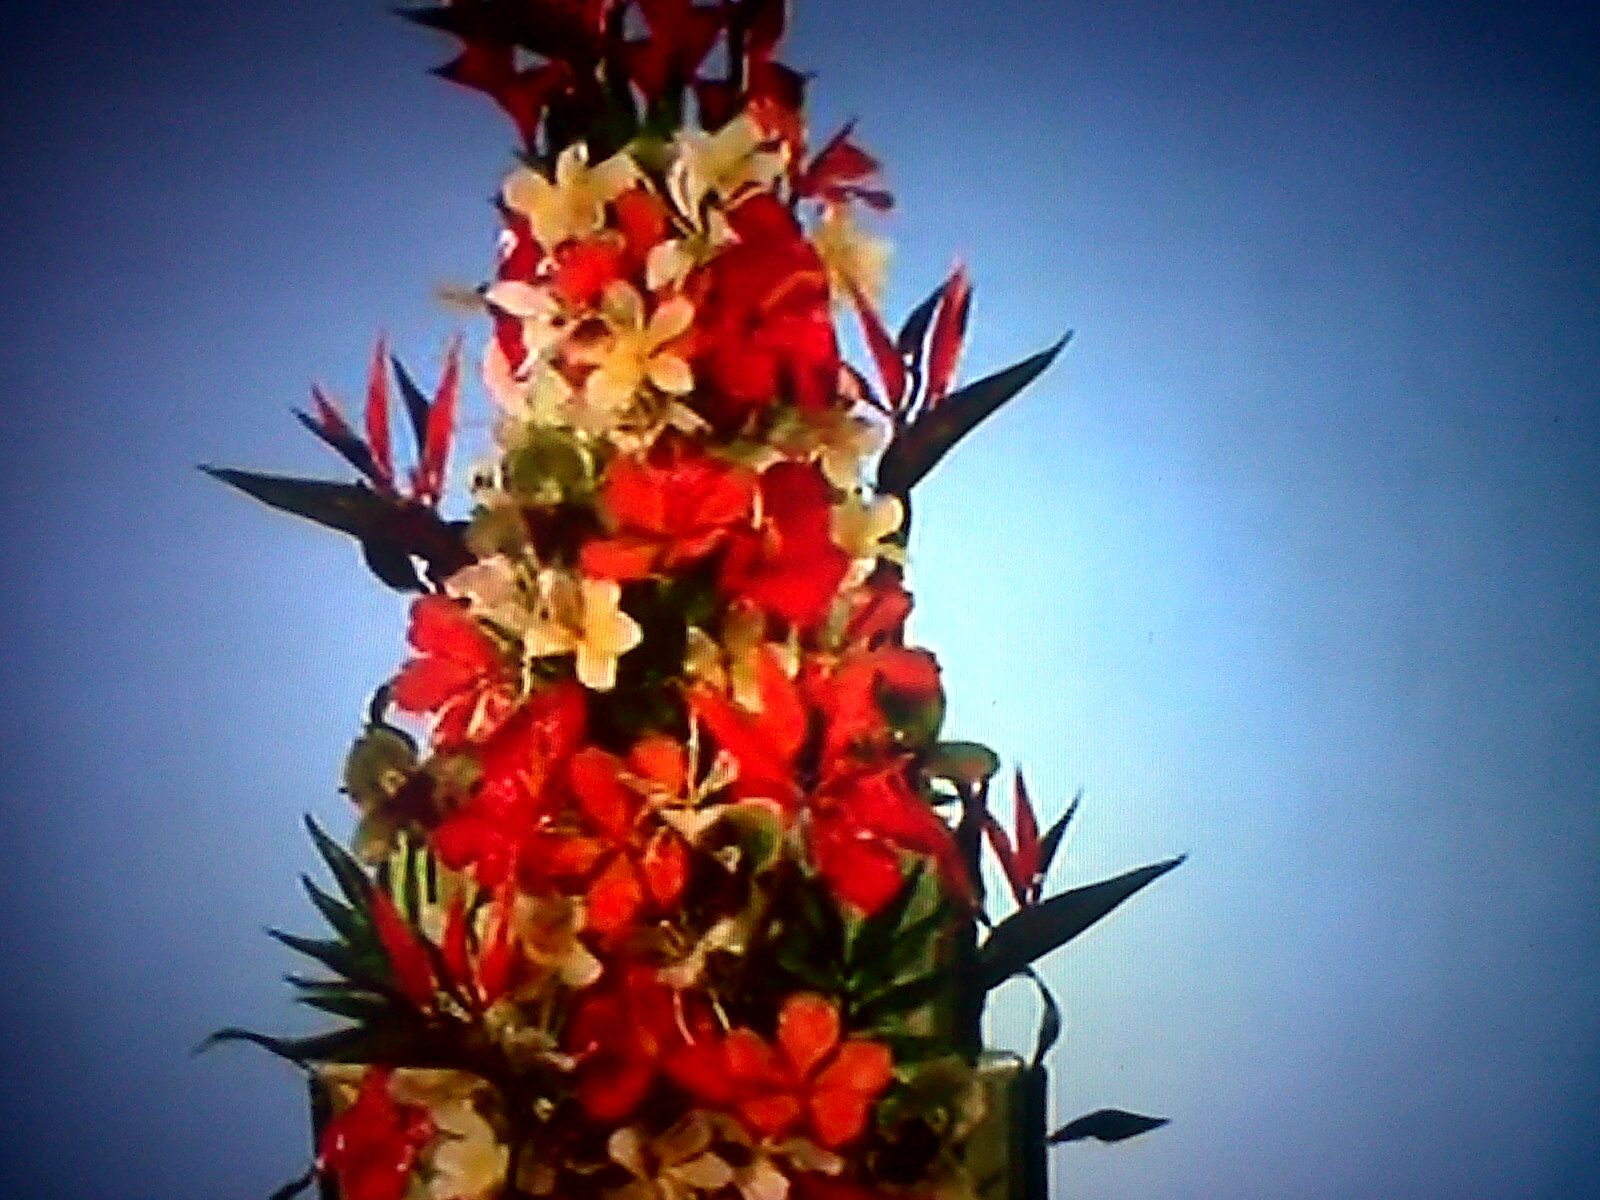 Tropical Flowers Featured On Amazing Wedding Cakes Food Network